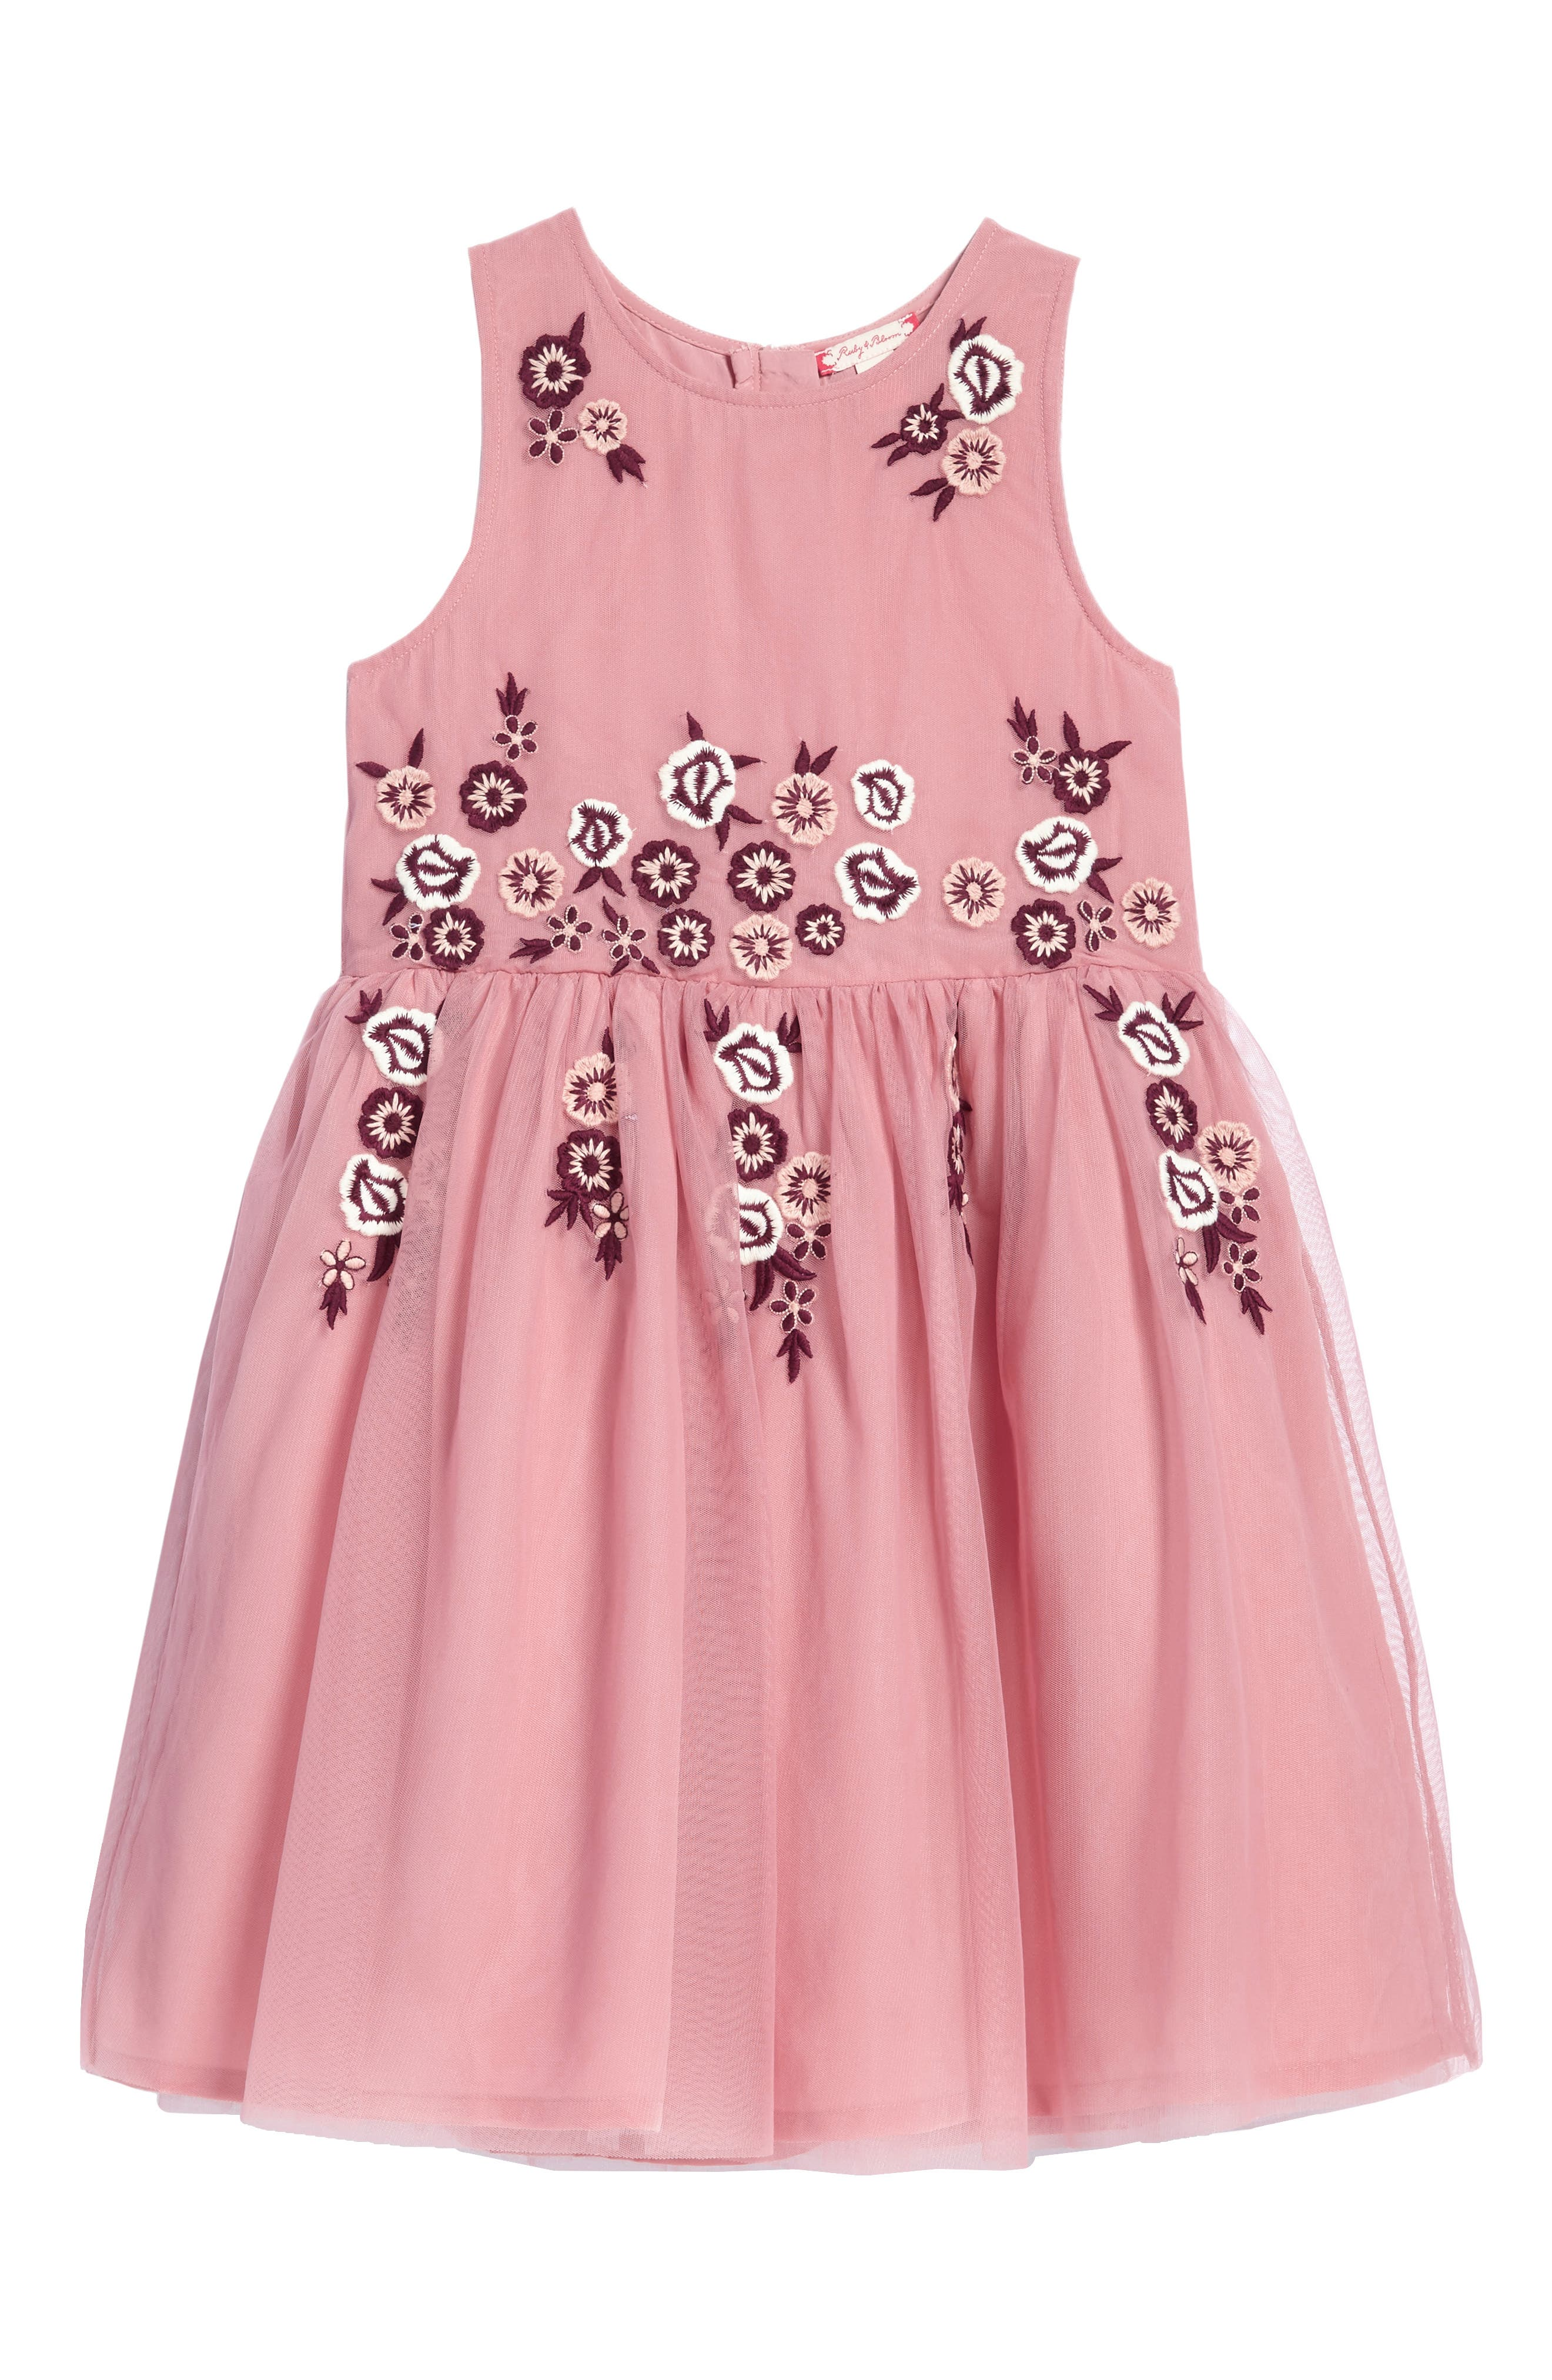 Flower Embroidered Dress,                             Main thumbnail 1, color,                             Pink Nostalgia